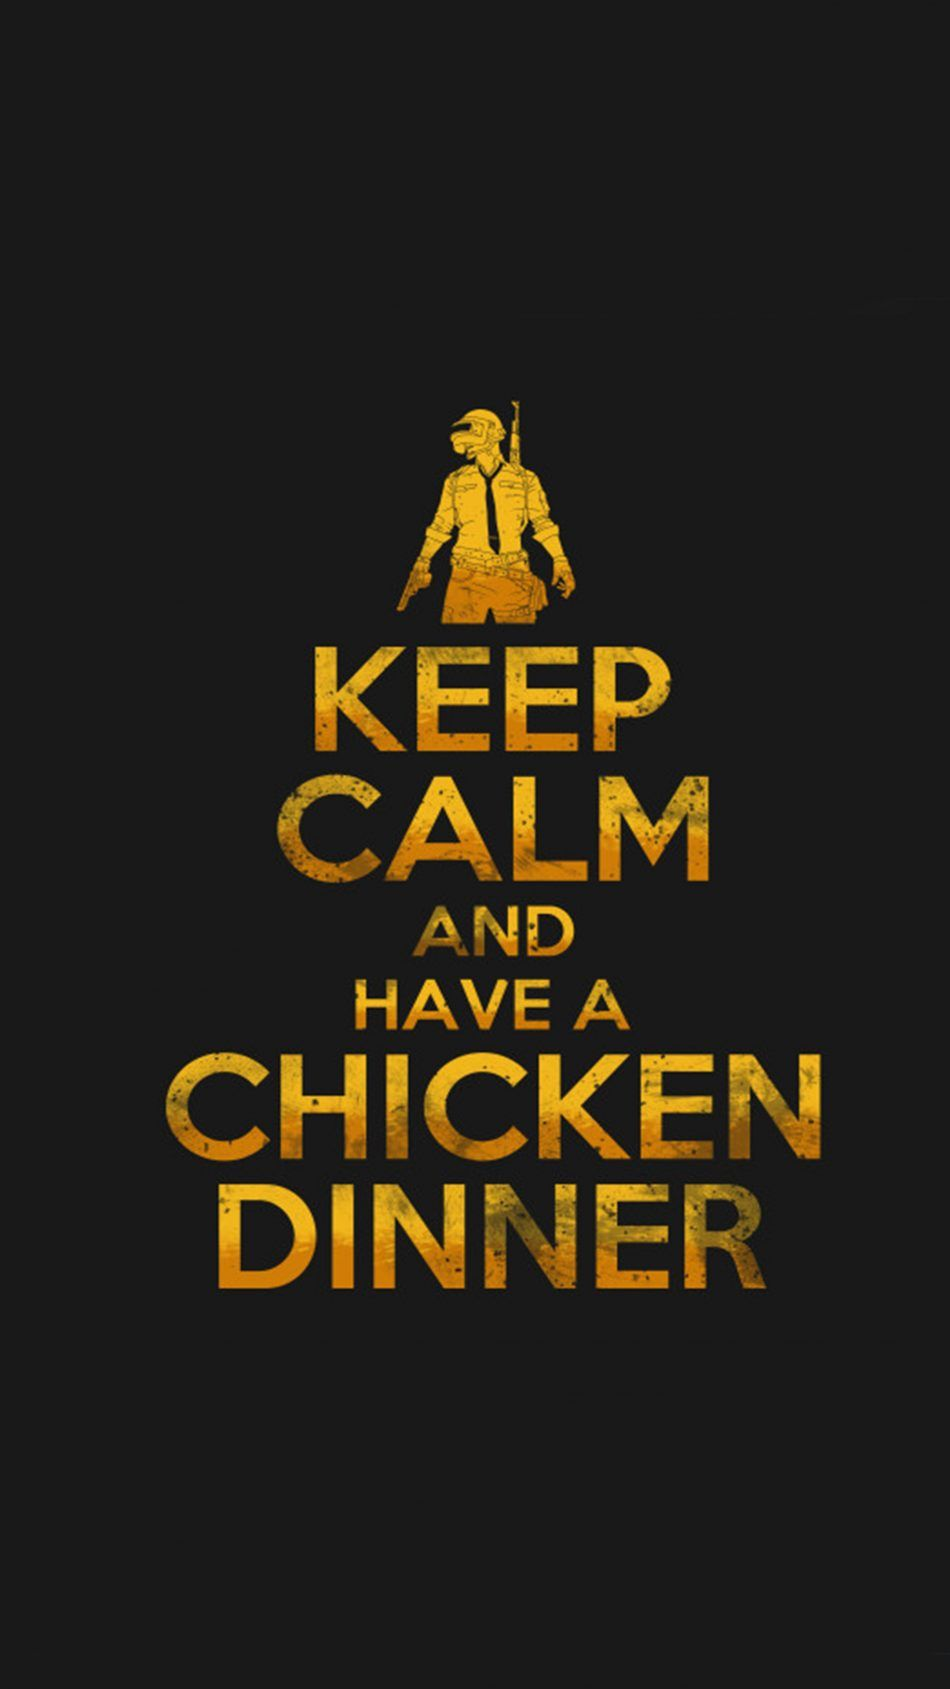 PUBG Keep Calm And Have A Chicken Dinner